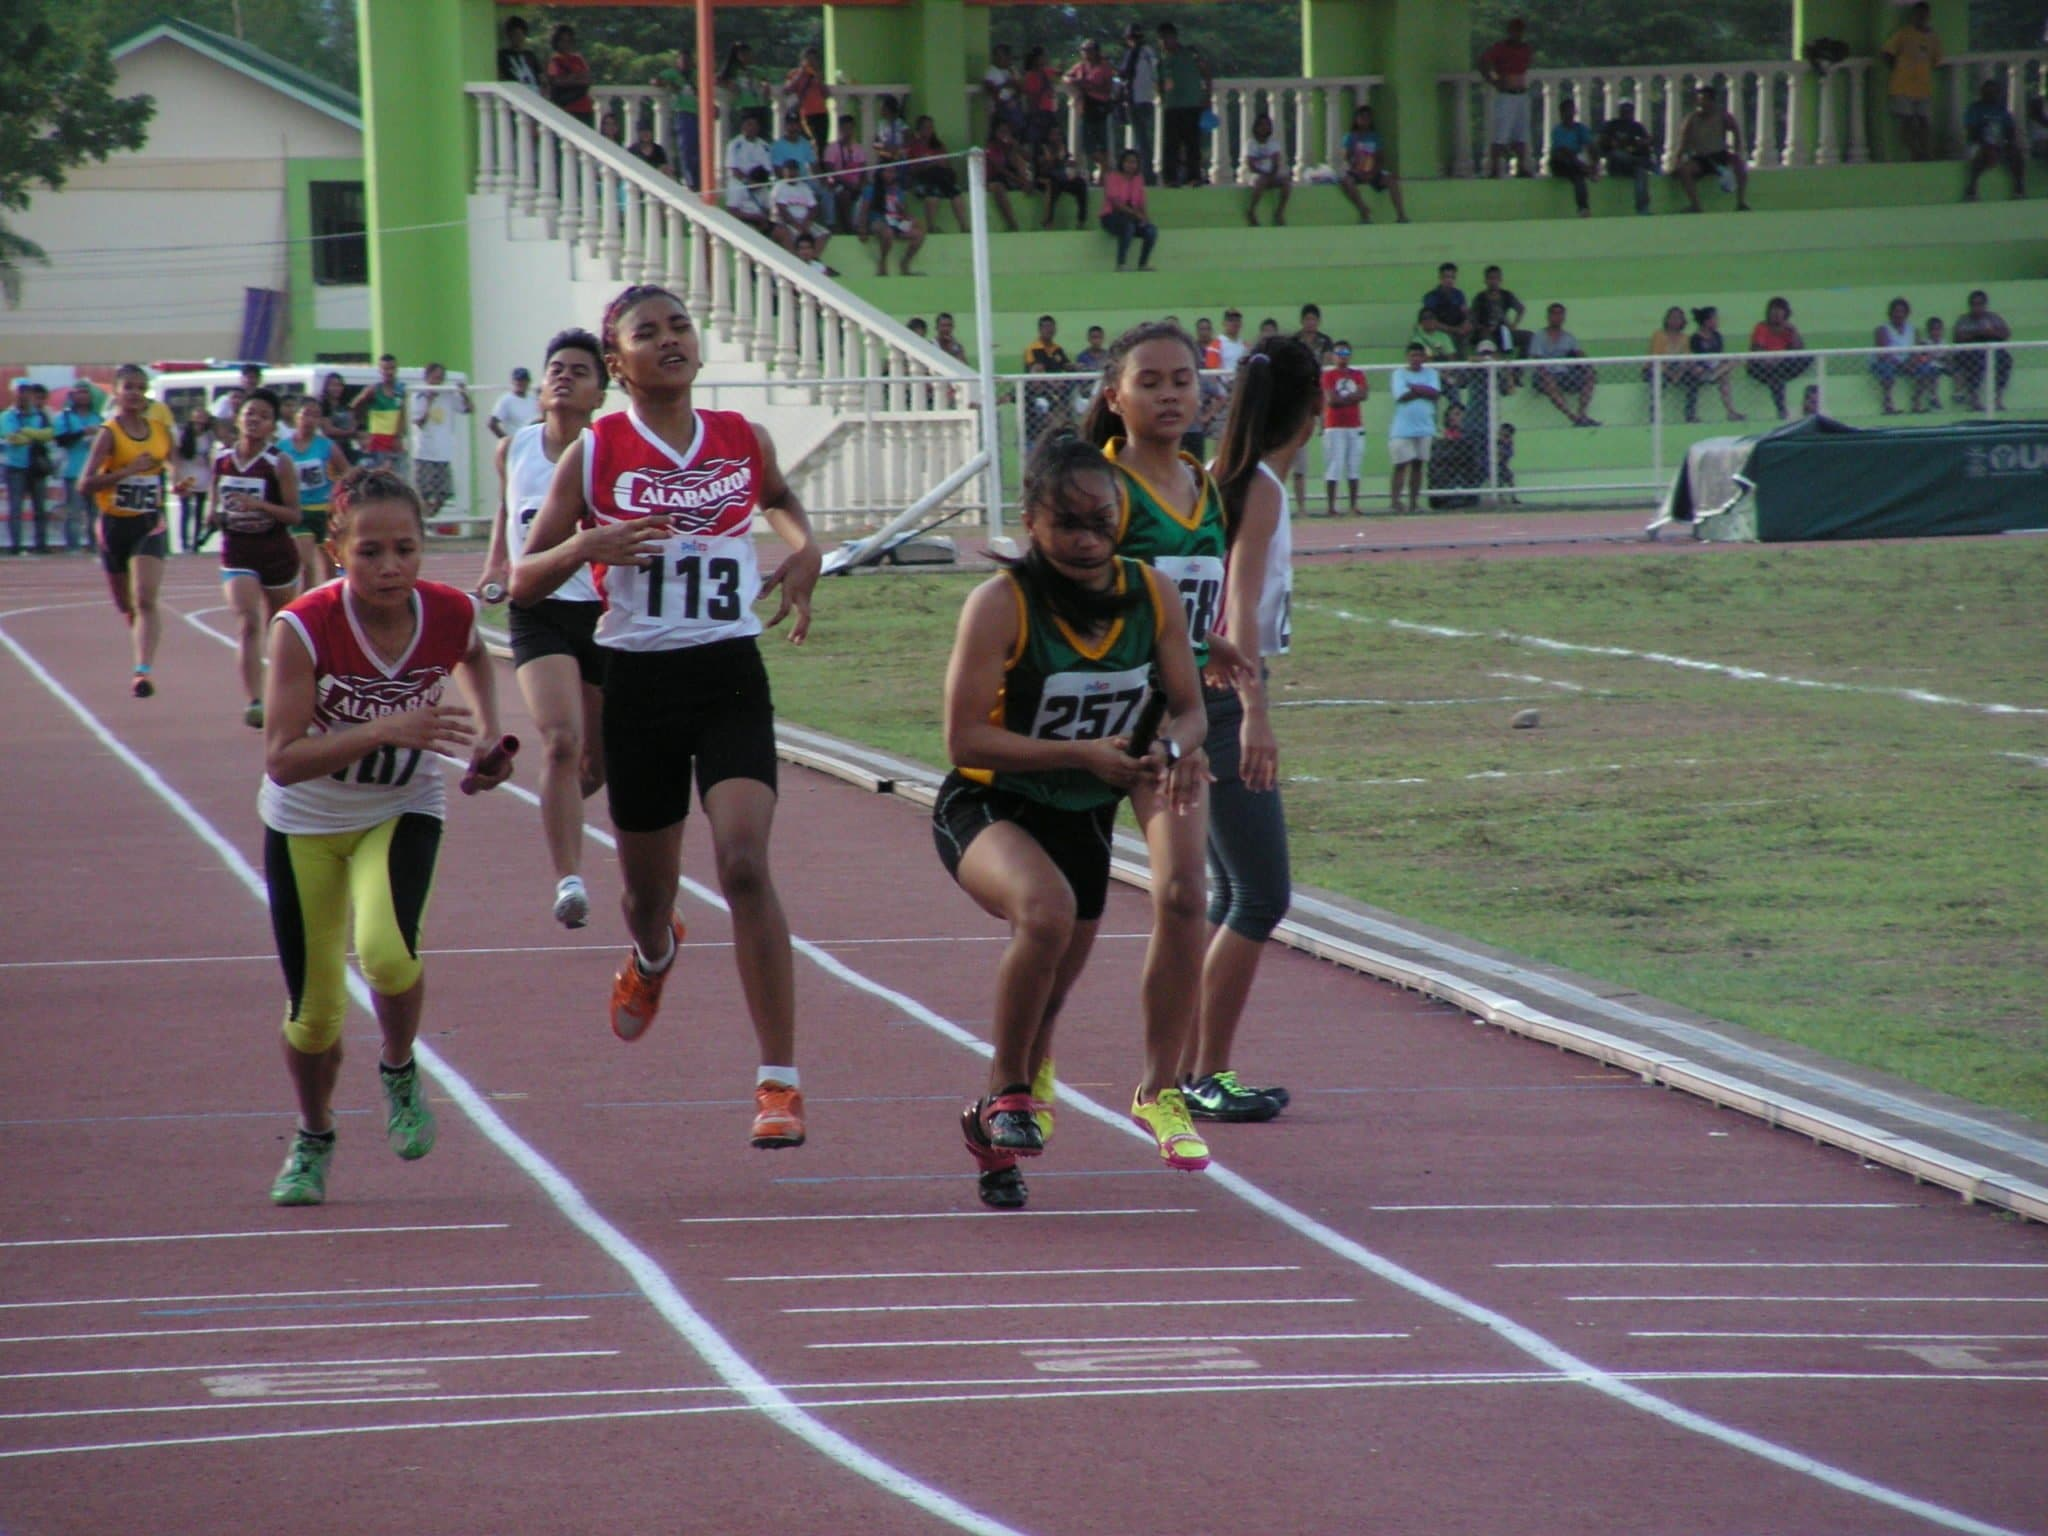 EVRAA's Leah Creer goes head-to-head with CALABARZON's Josefina Yjay Baloloy on the final lap of 4x400m relay